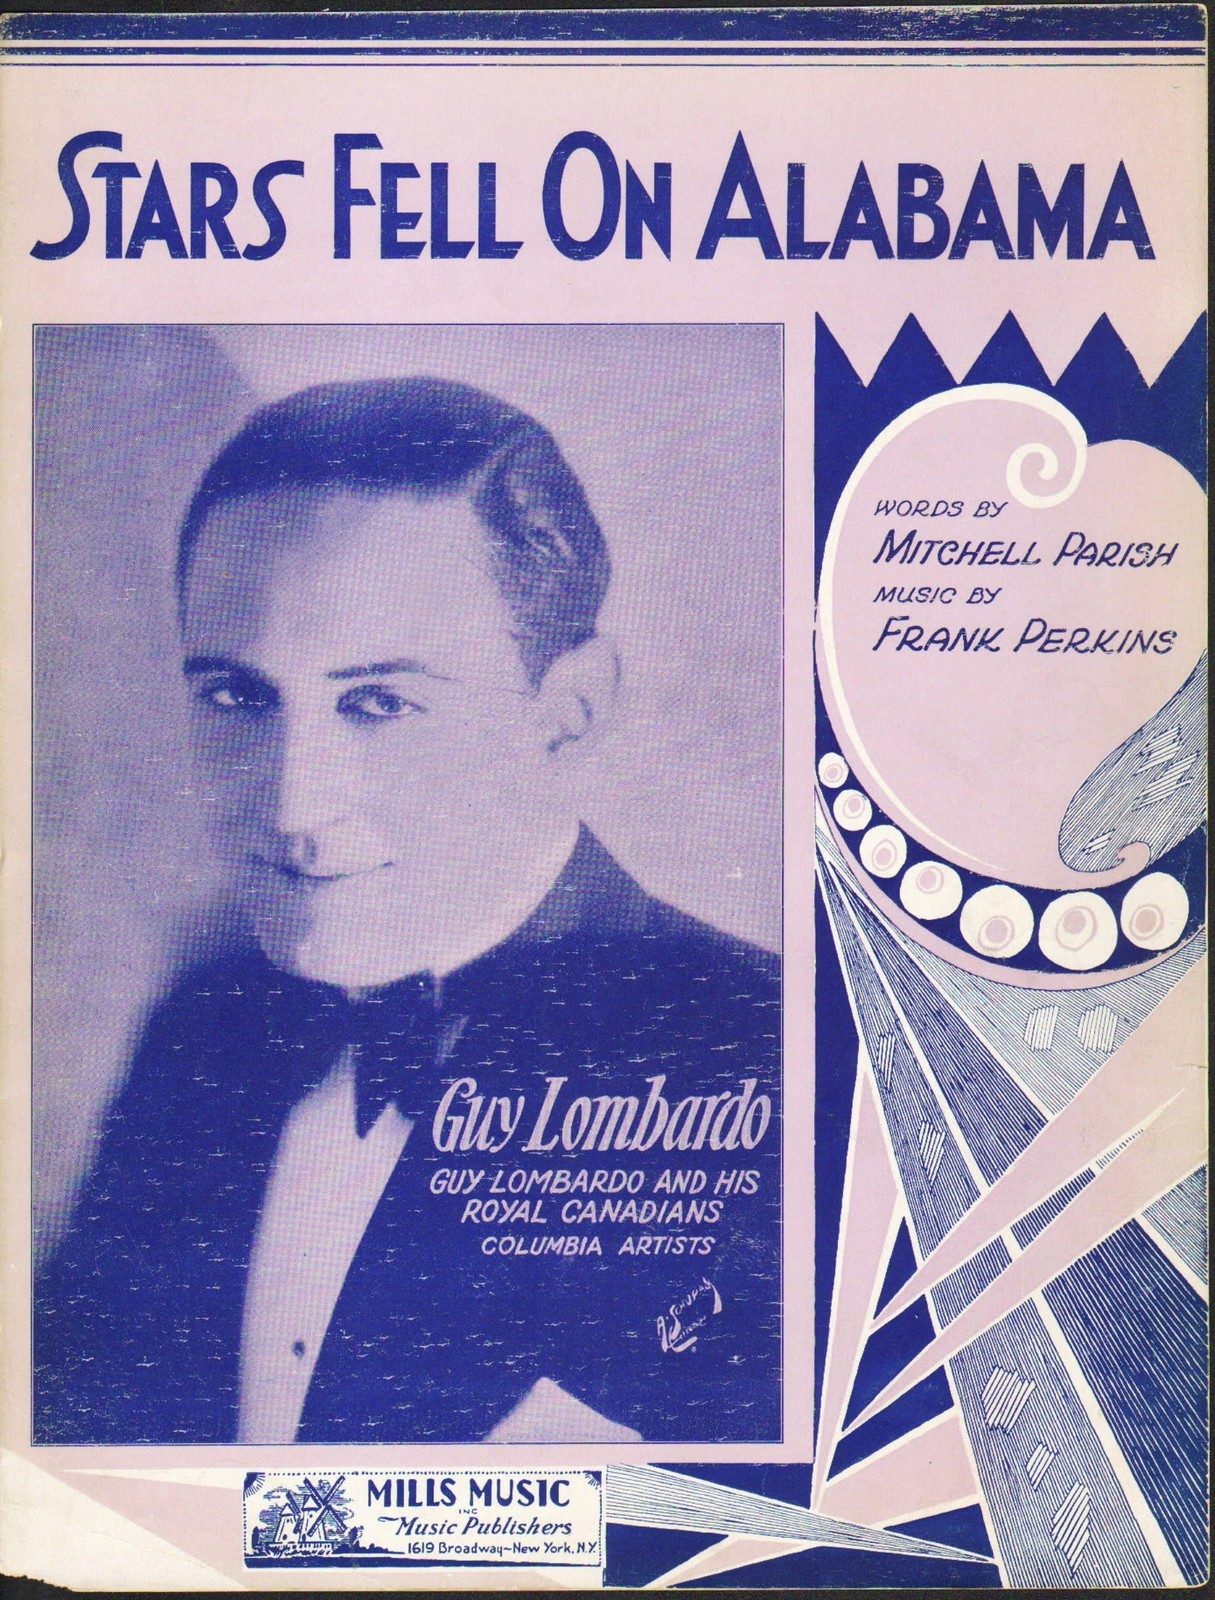 ... With Astronomical Themes No. 4: Stars Fell On Alabama, With The